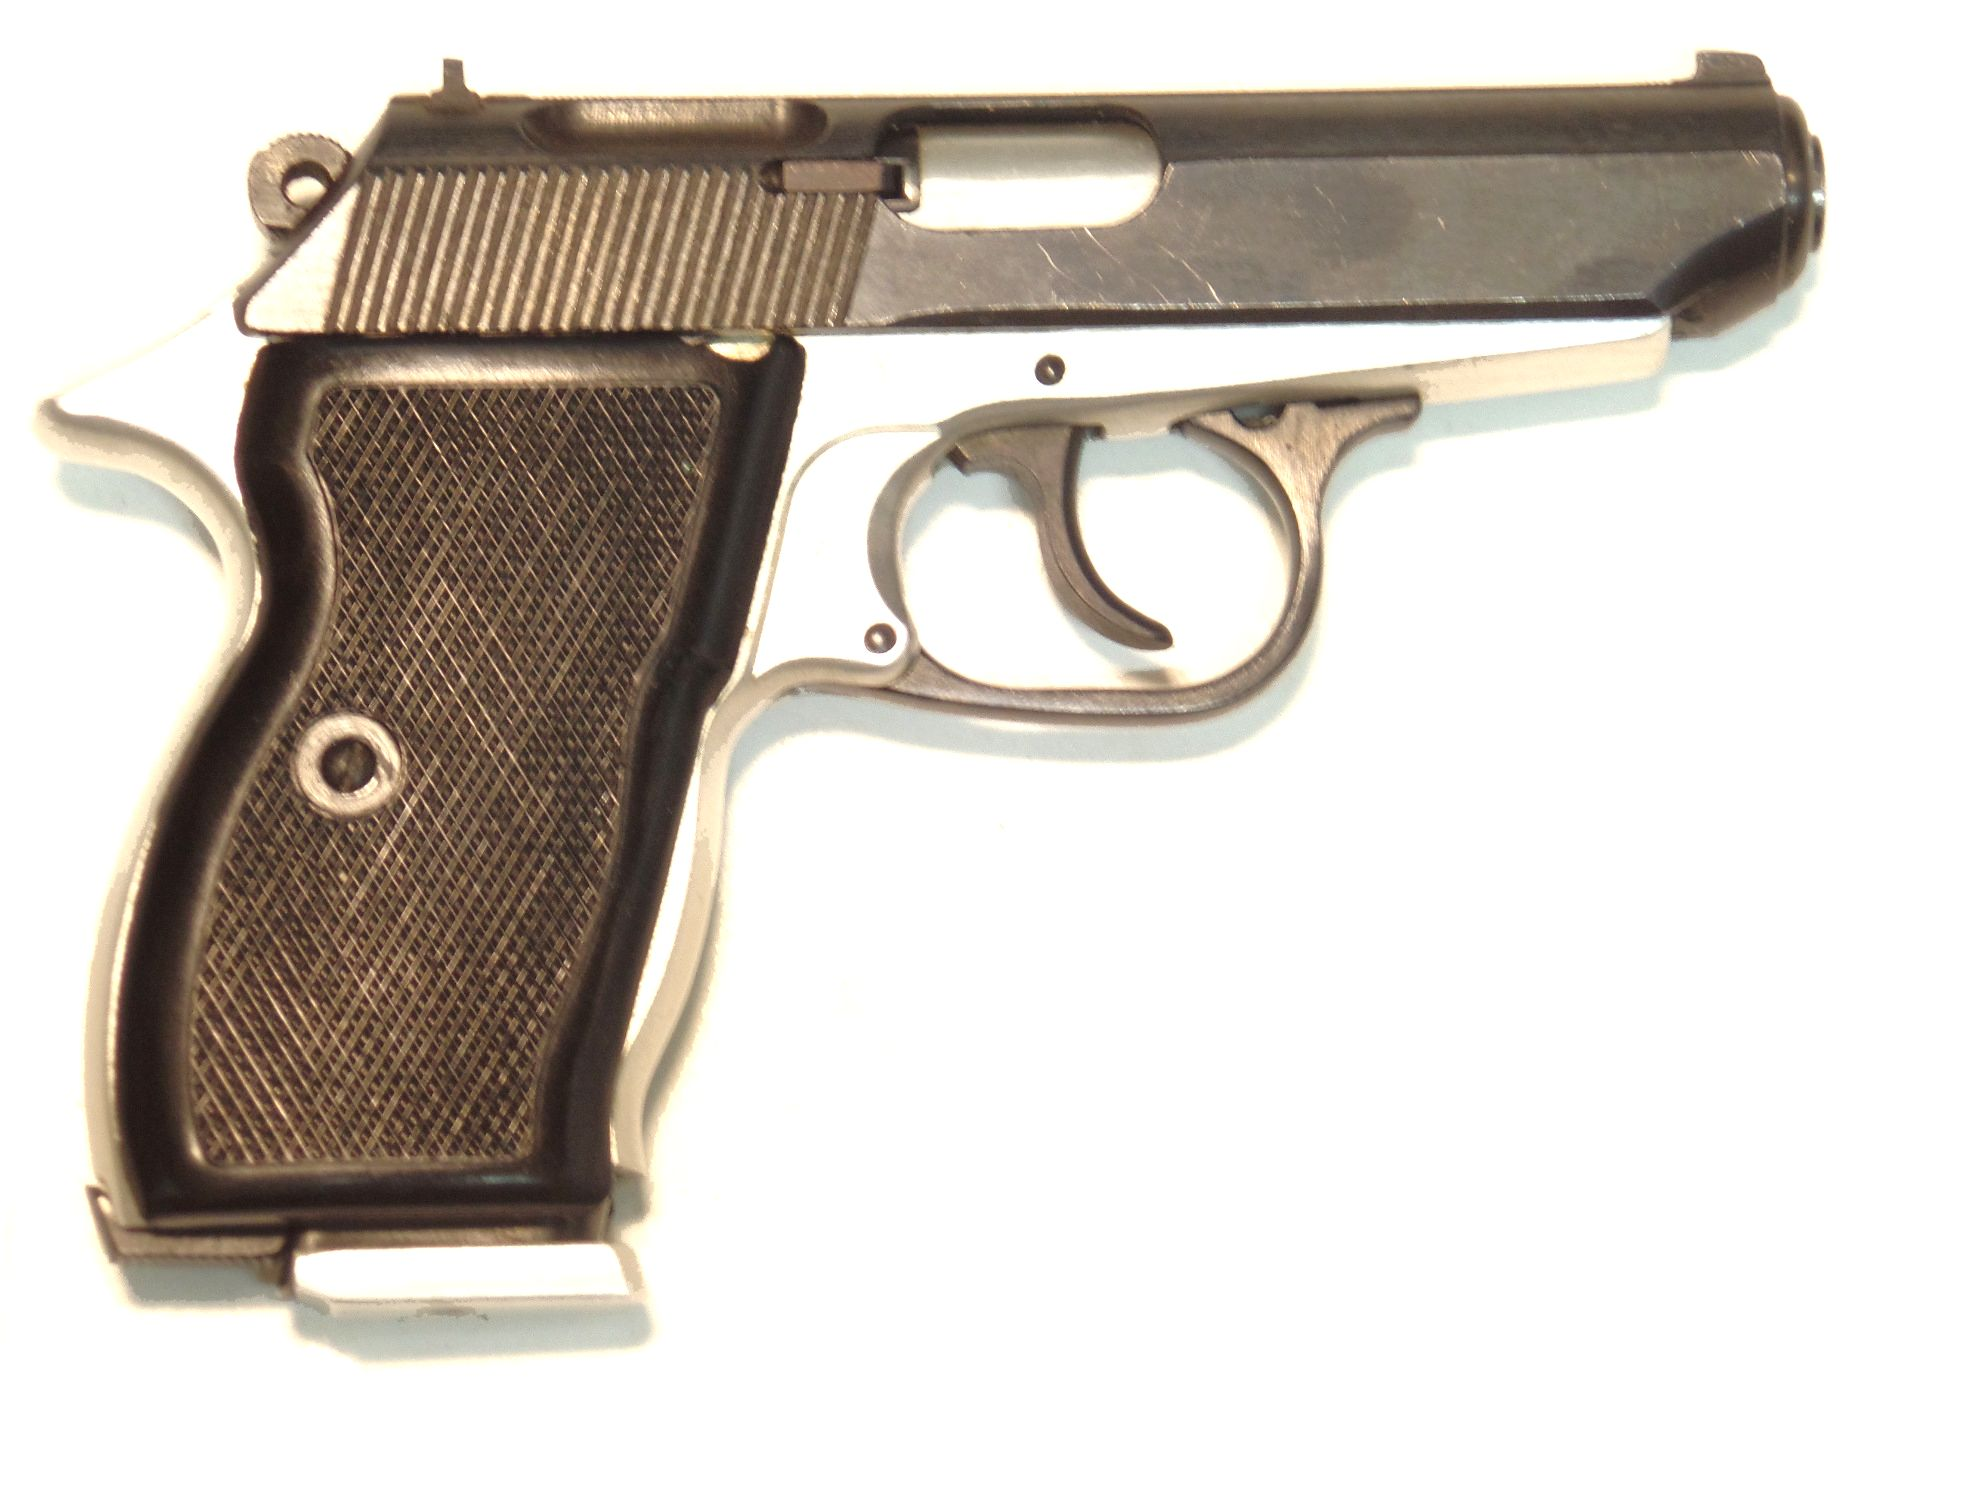 Carpati Md.1974 calibre7.65 Browing